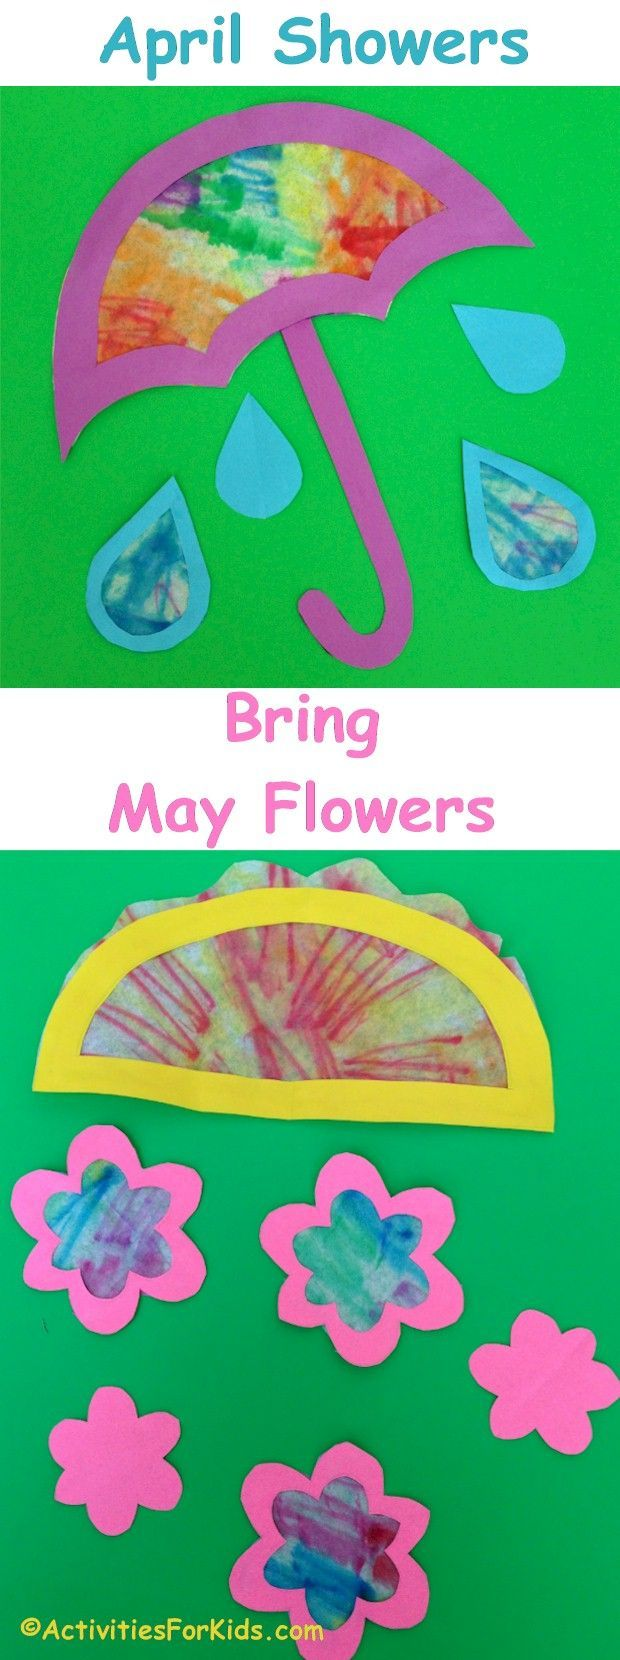 April Showers Bring May Flowers Spring Crafts For Kids Toddler